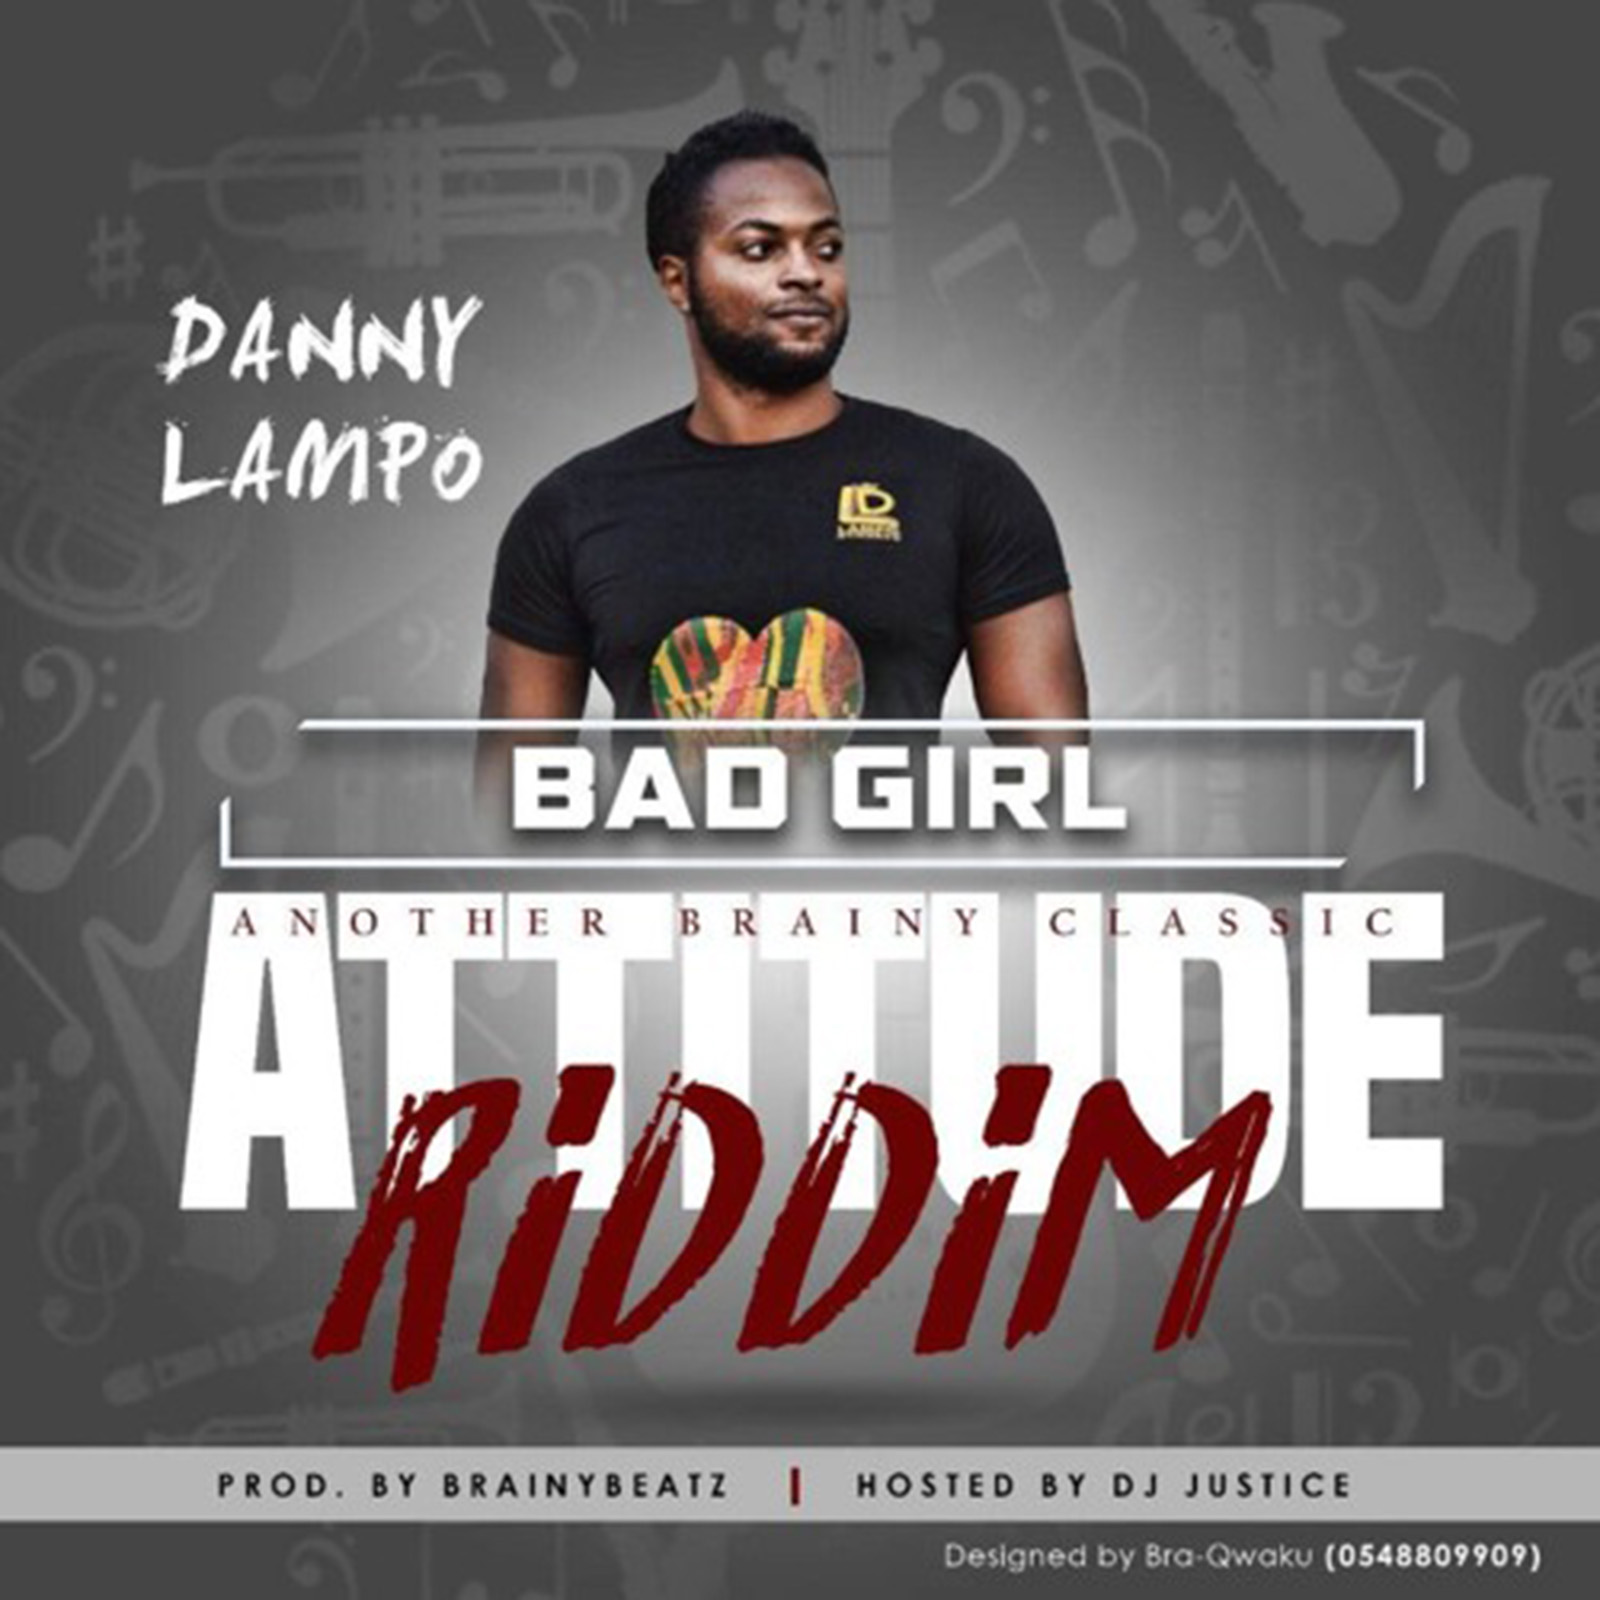 Bad Girl (Attitude Riddim) by Danny Lampo